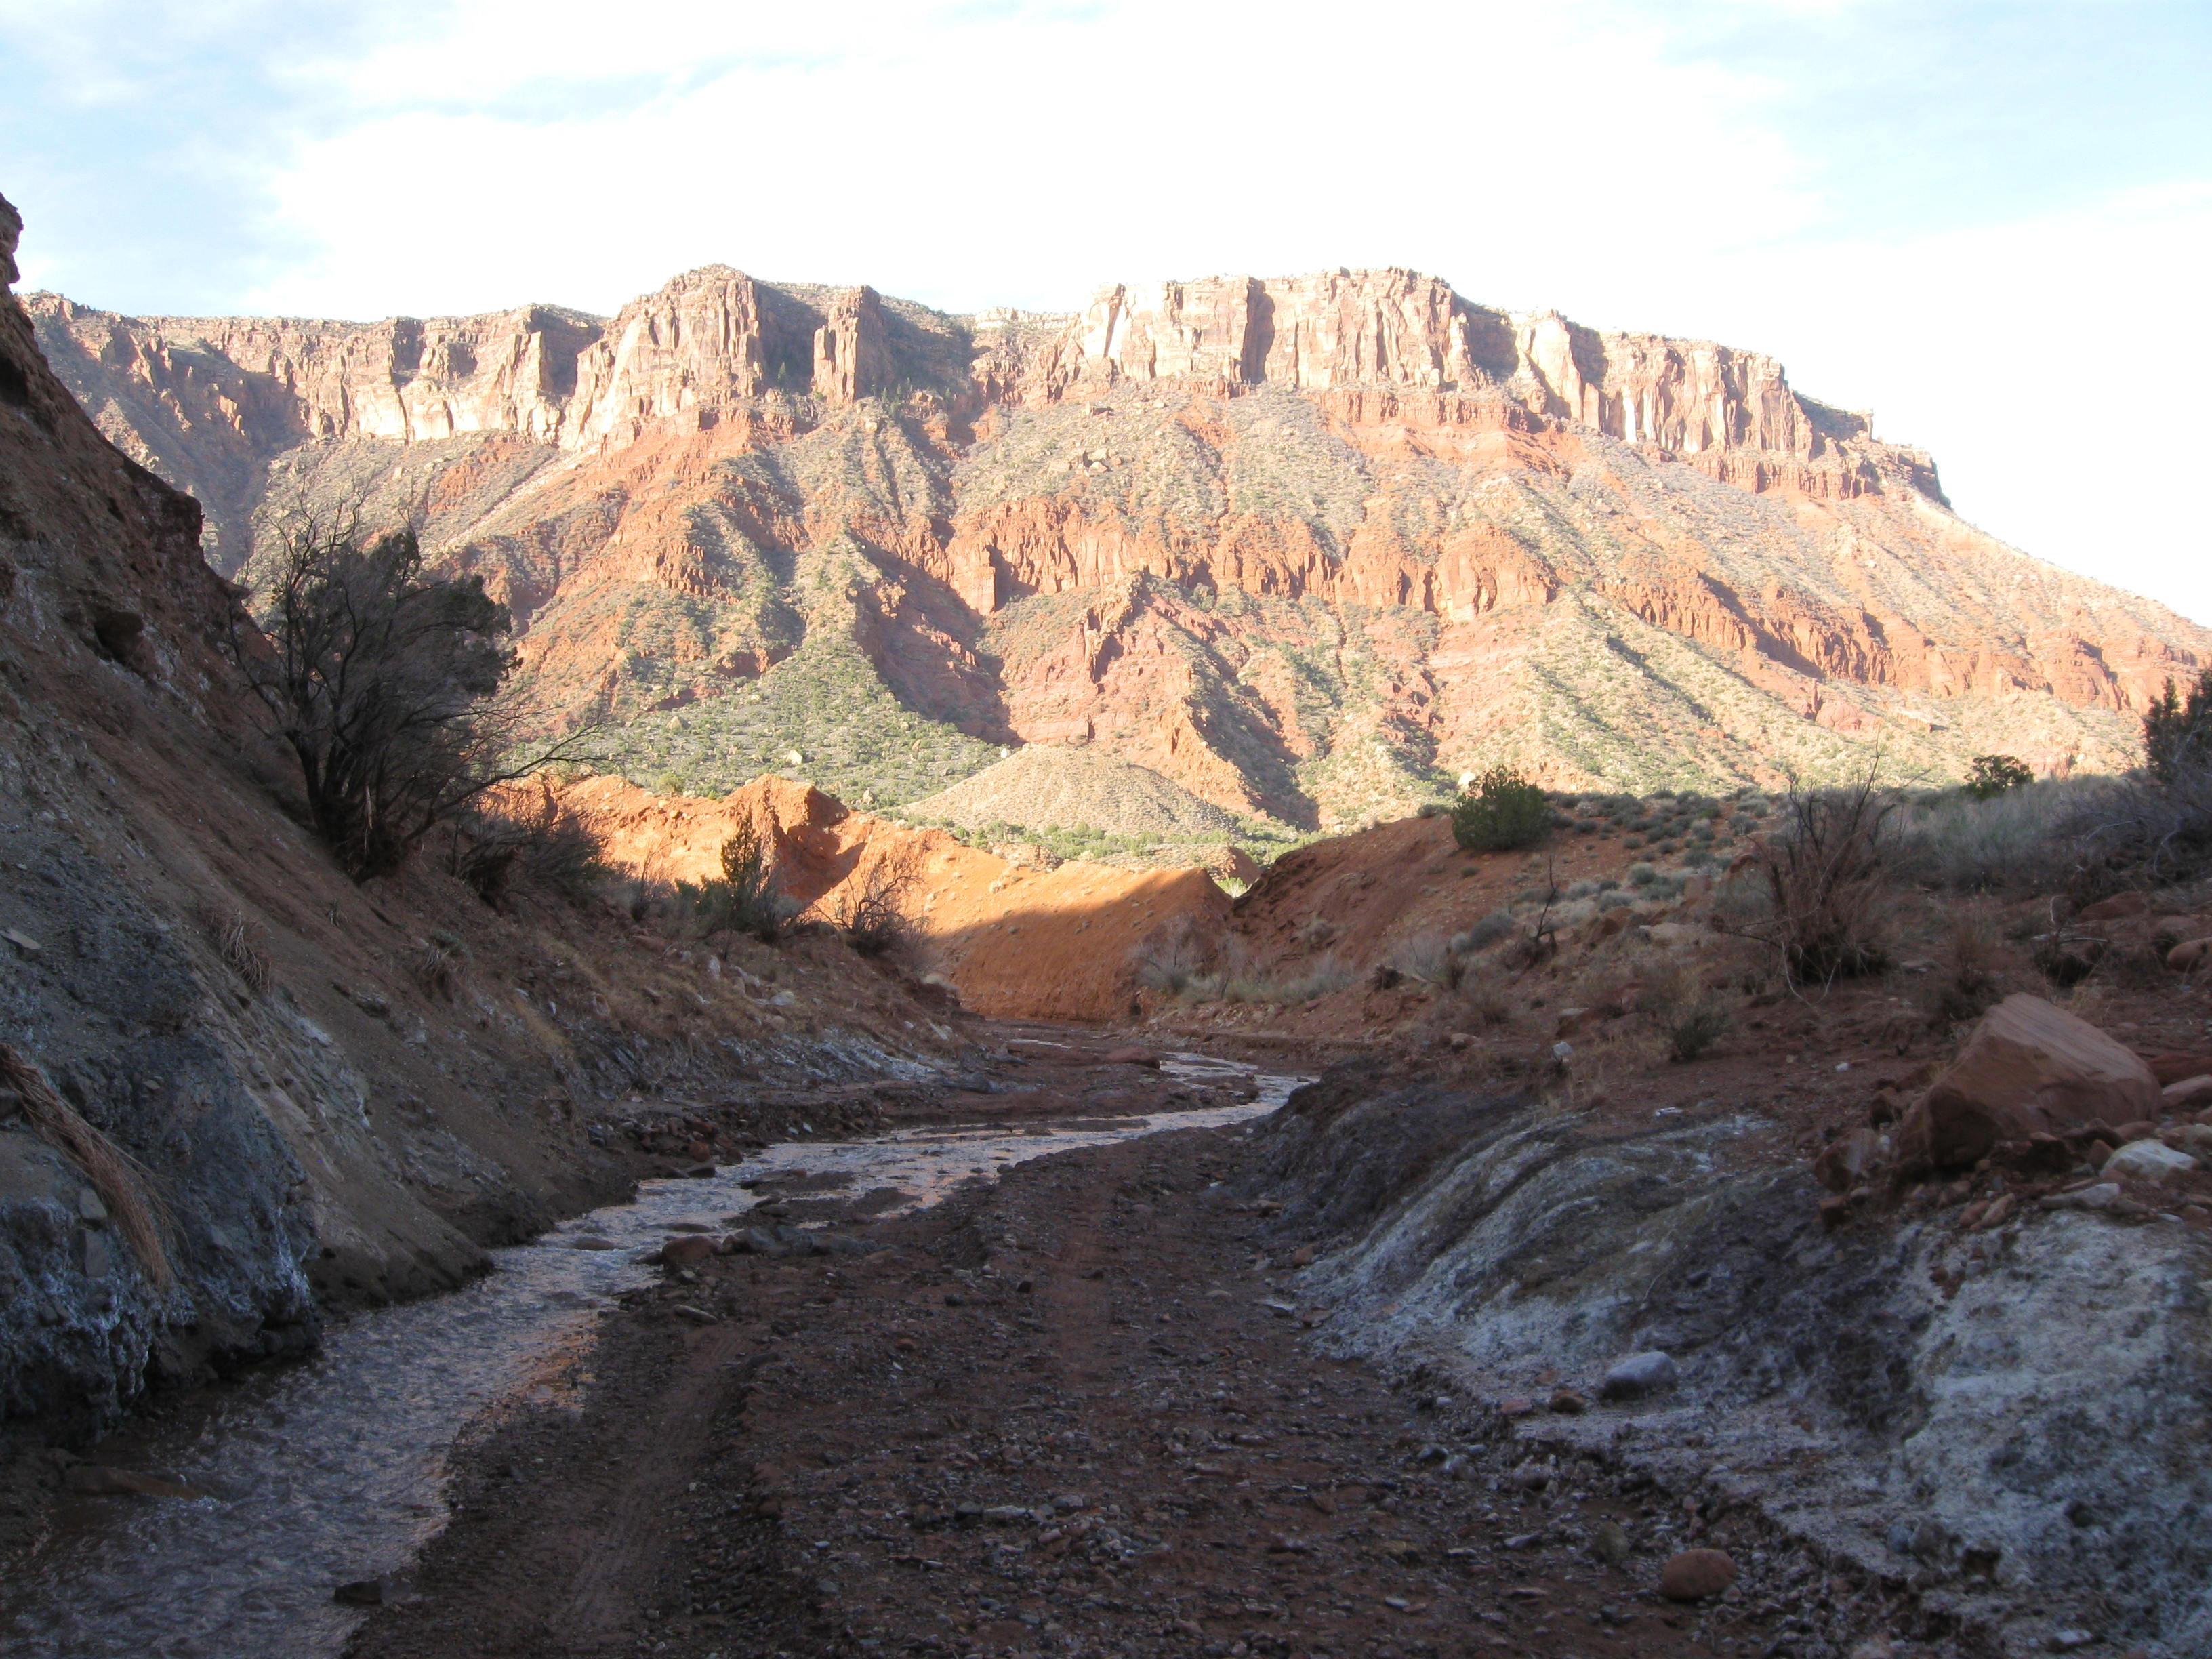 To moab utah and camping near arches national park cabin for Moab utah cabins